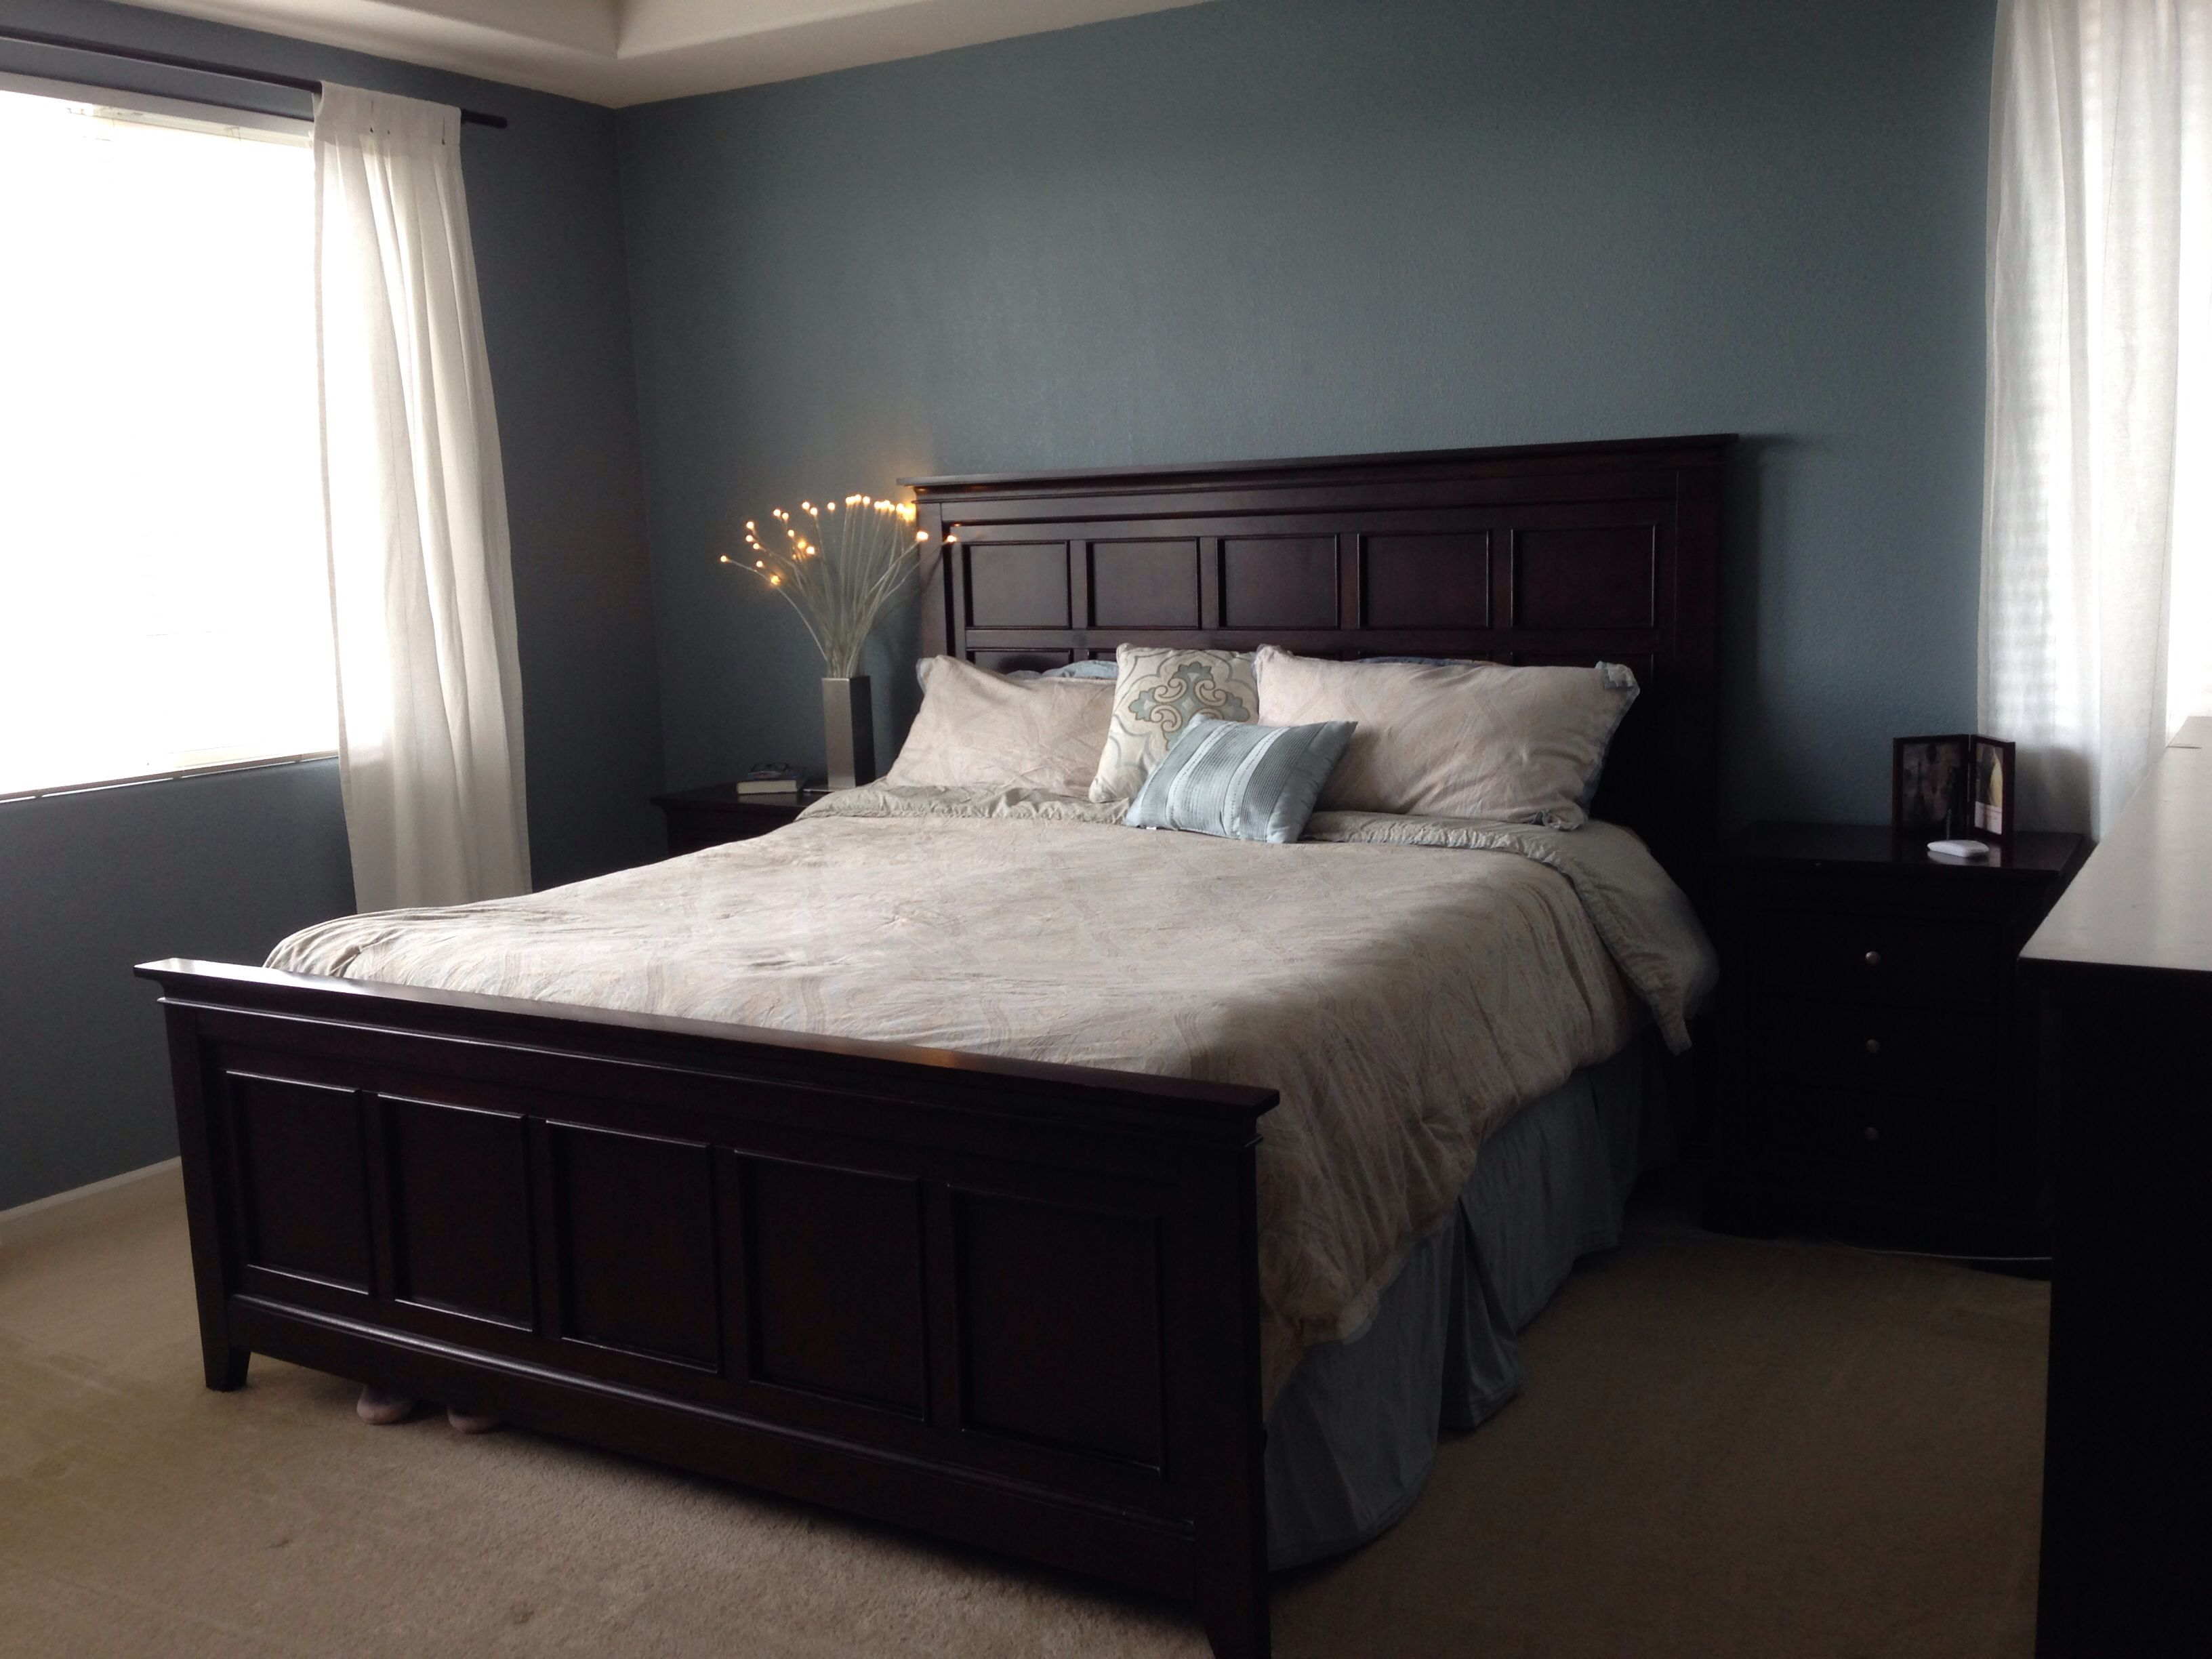 valspar blue twilight just painted our room and i love this color much better than the cookie. Black Bedroom Furniture Sets. Home Design Ideas